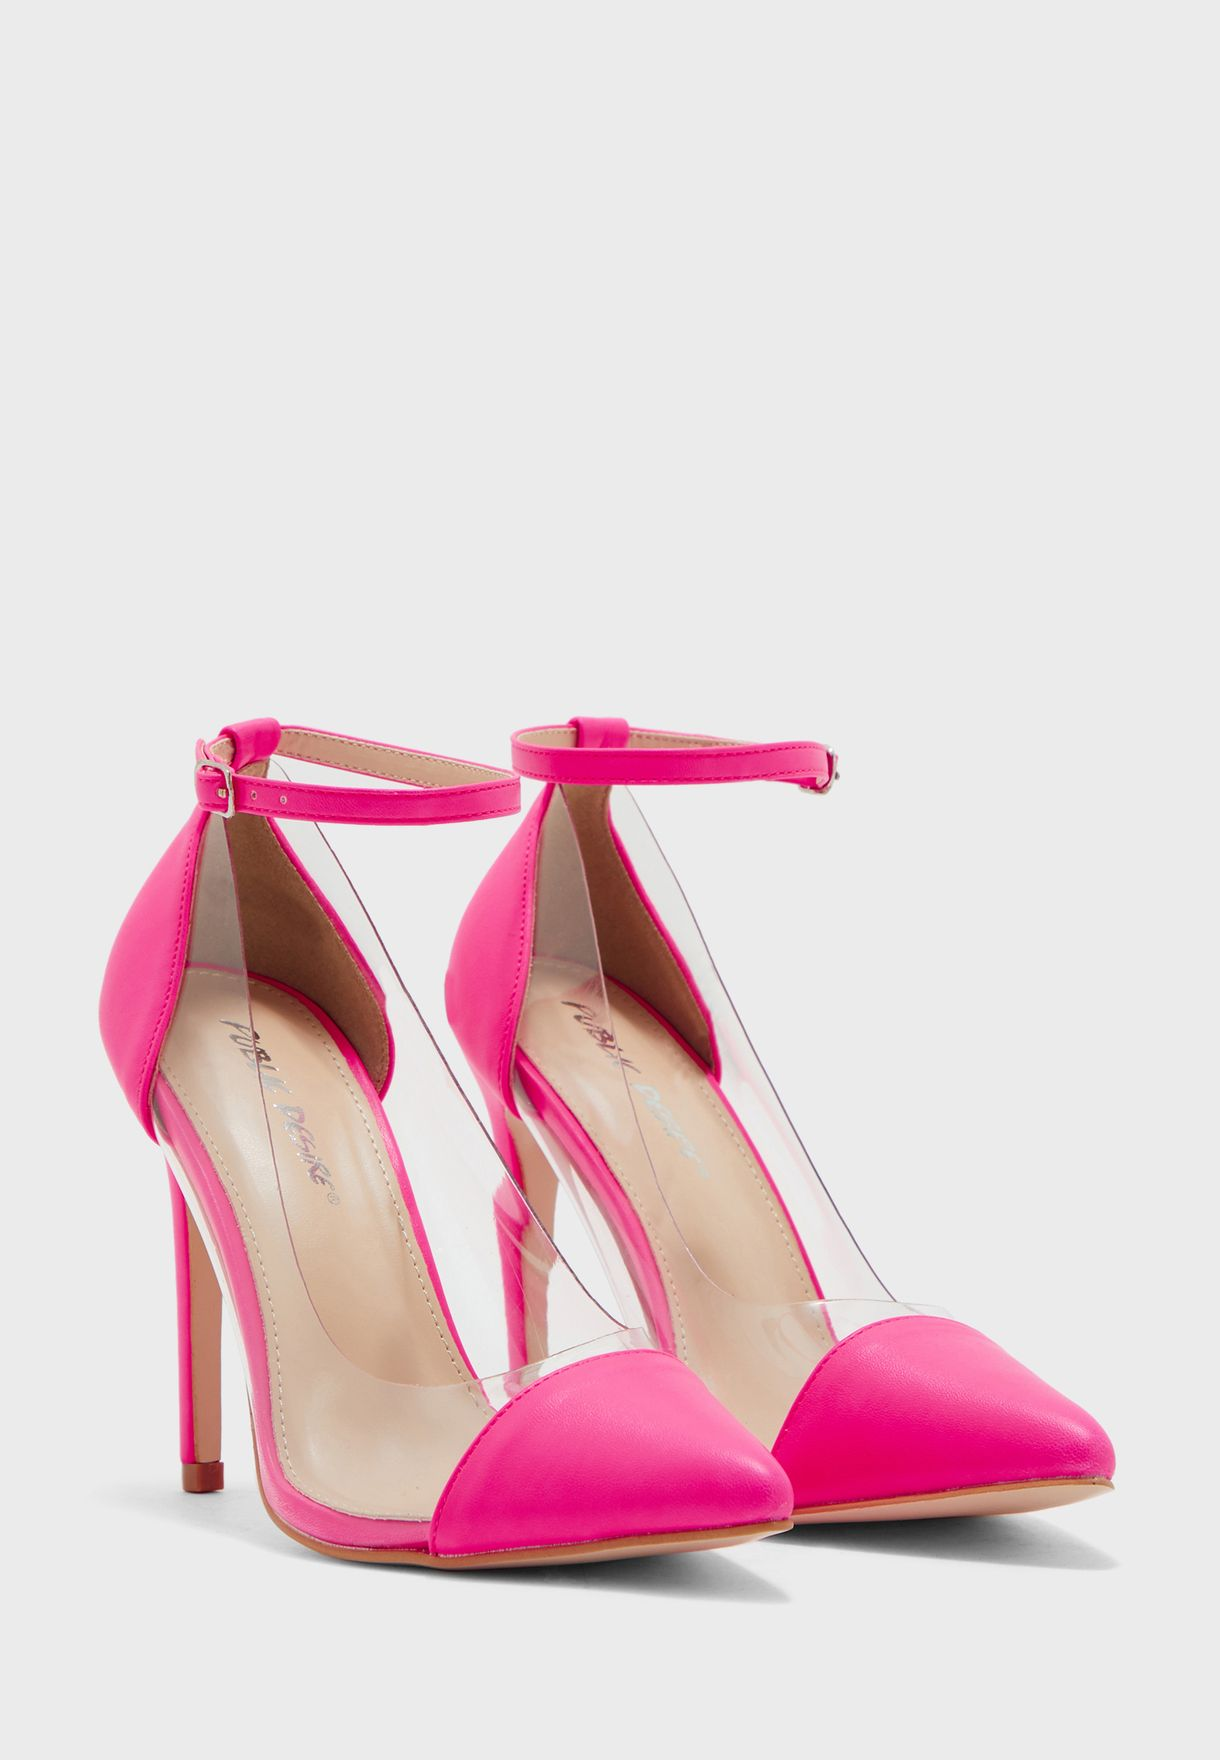 Debut Ankle Strap Pump